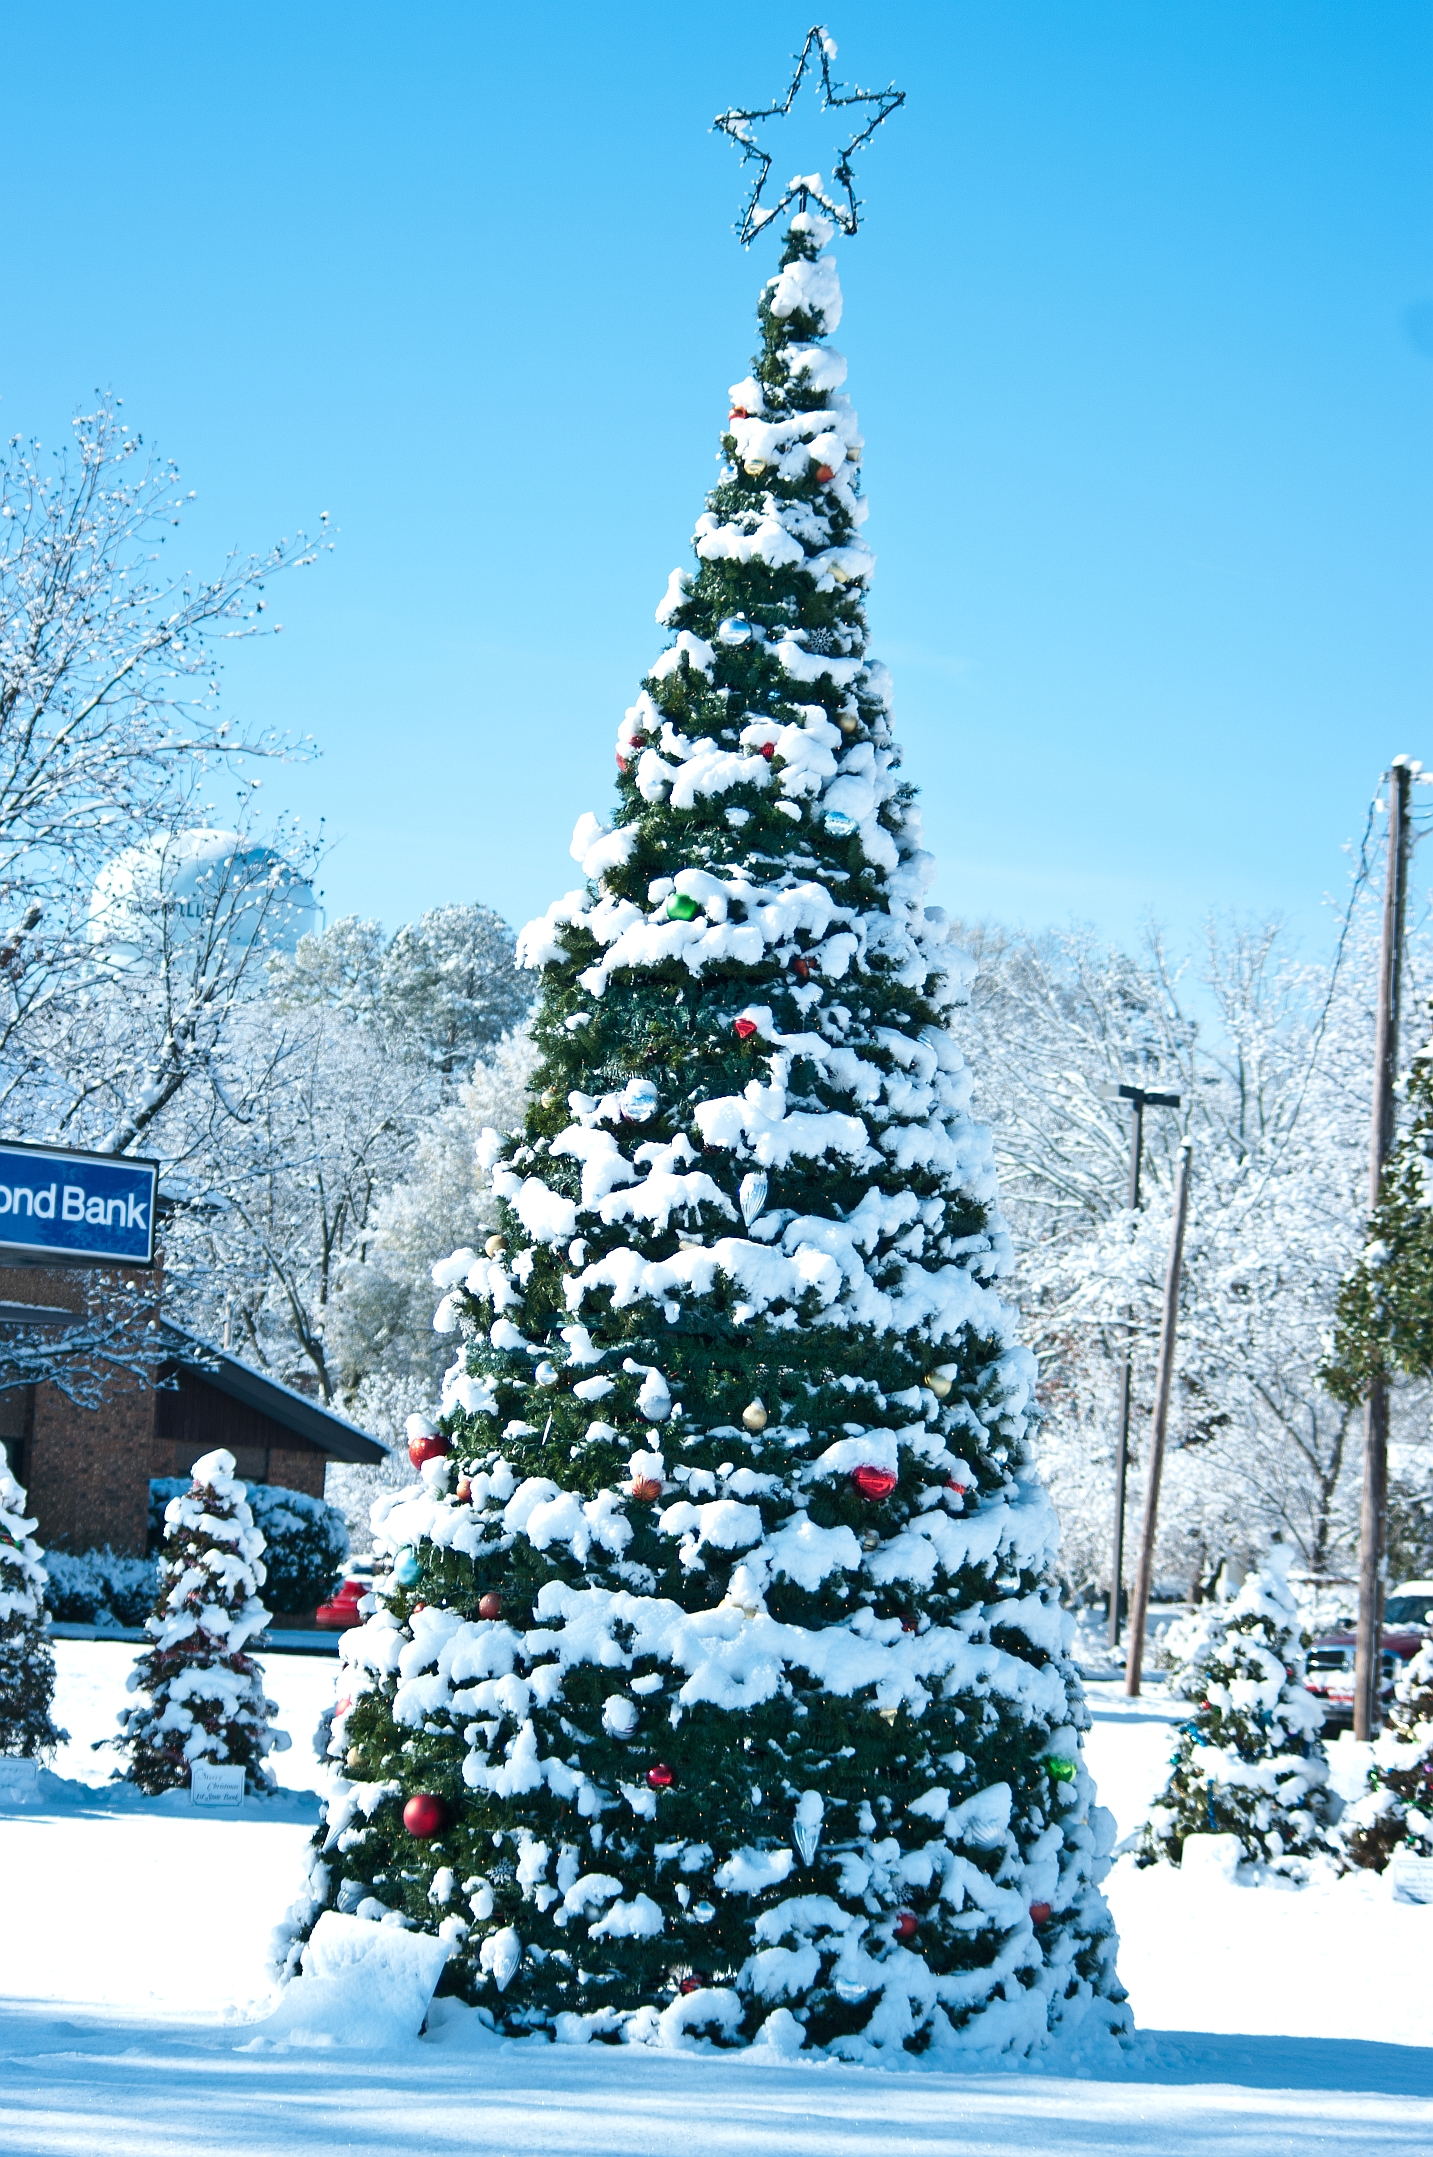 Large Christmas tree covered in snow in Nashville, AR